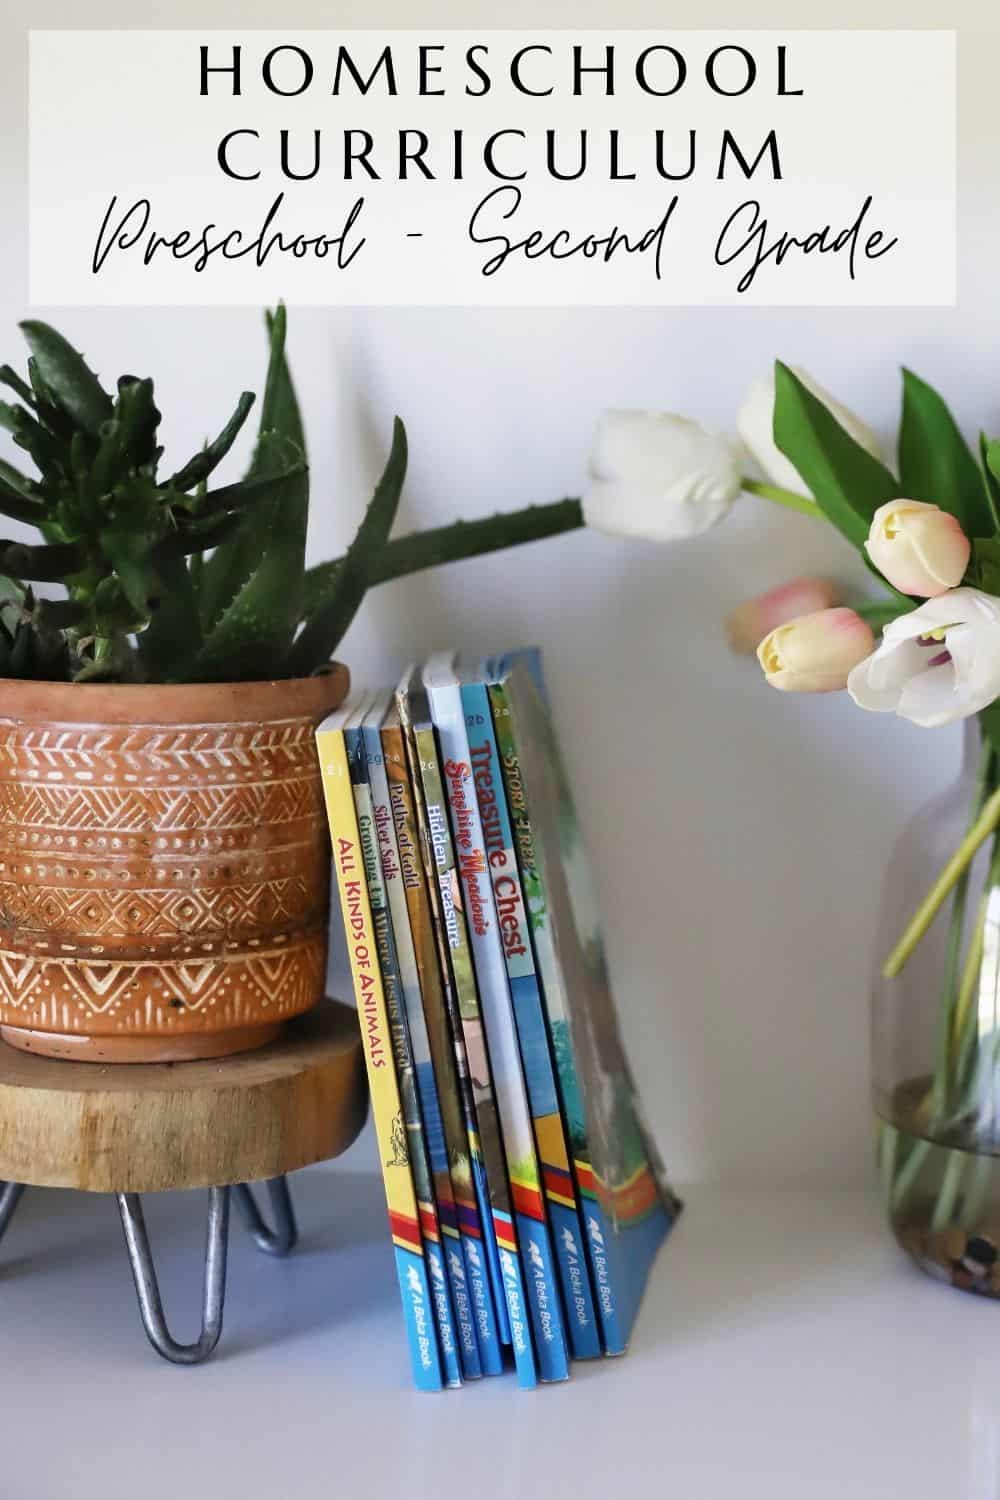 second grade reading books stacked against succulents